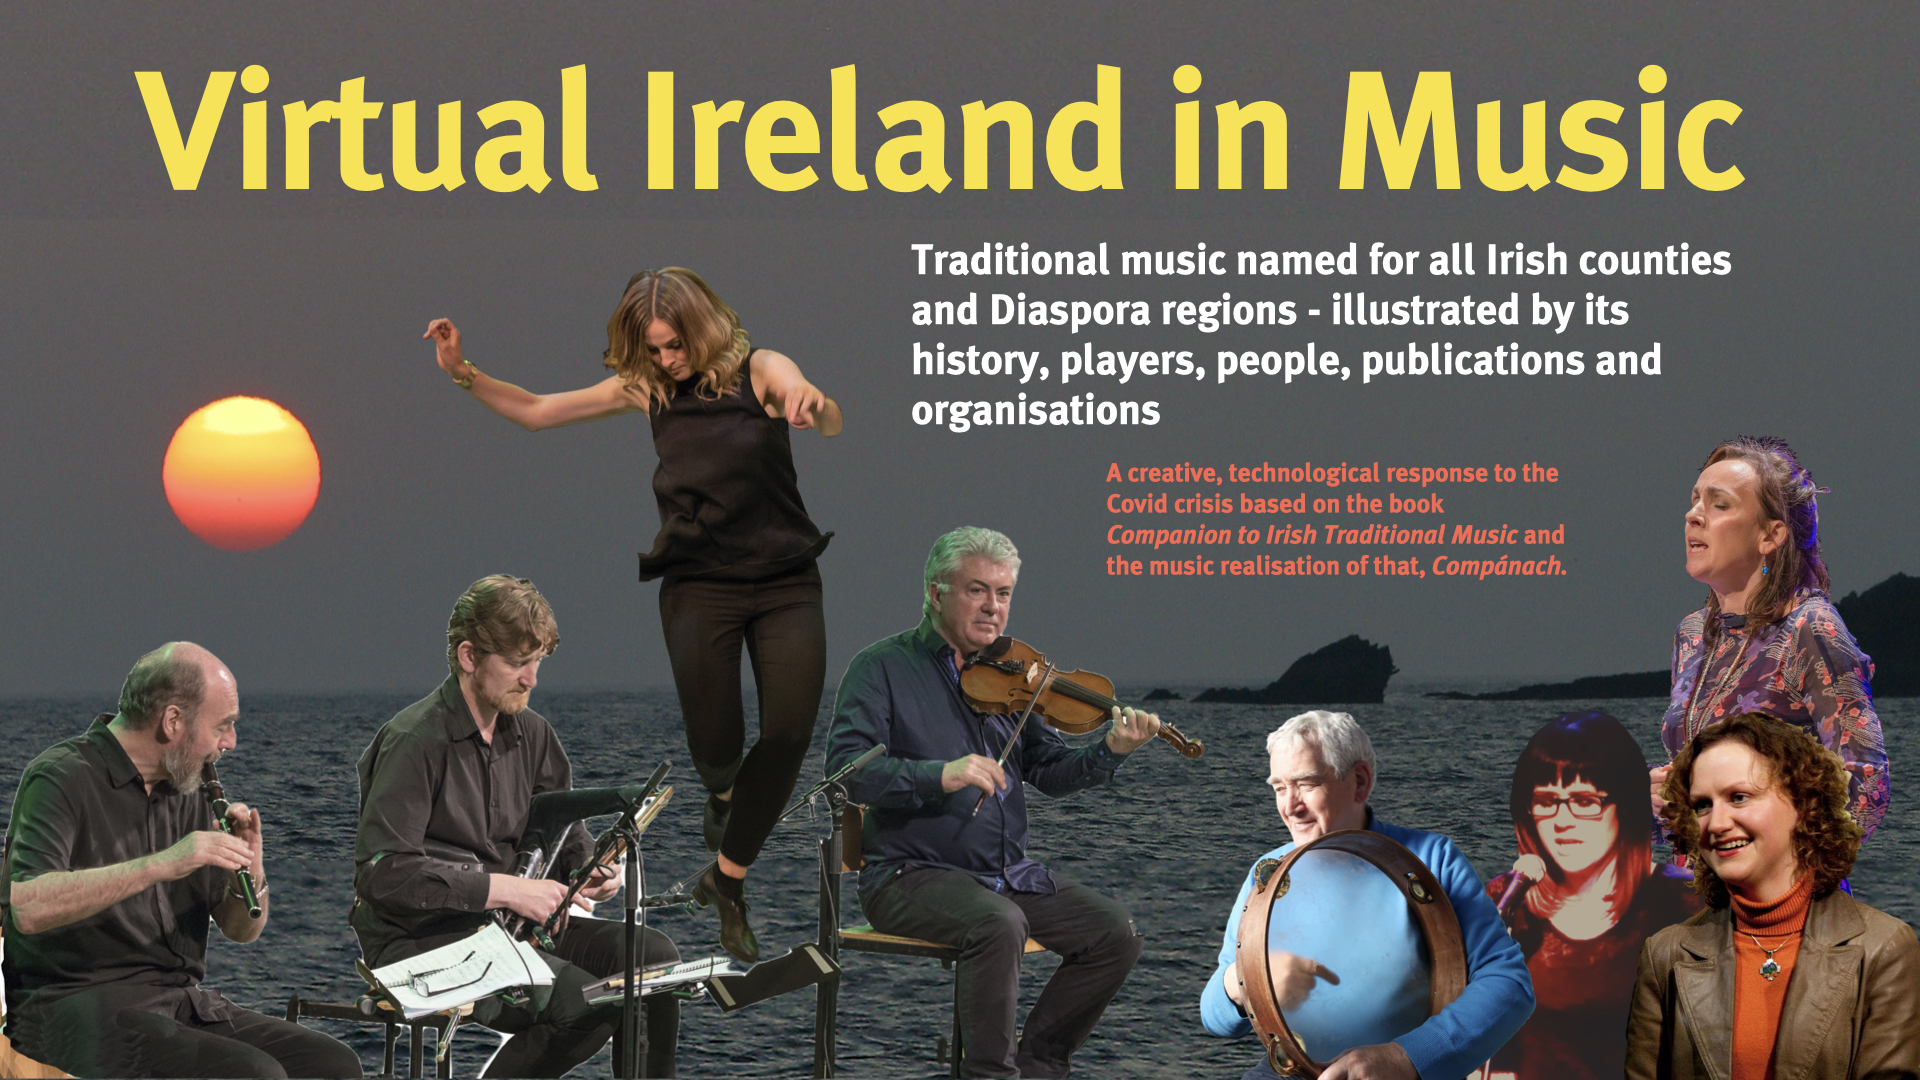 virtual ireland in music design.001